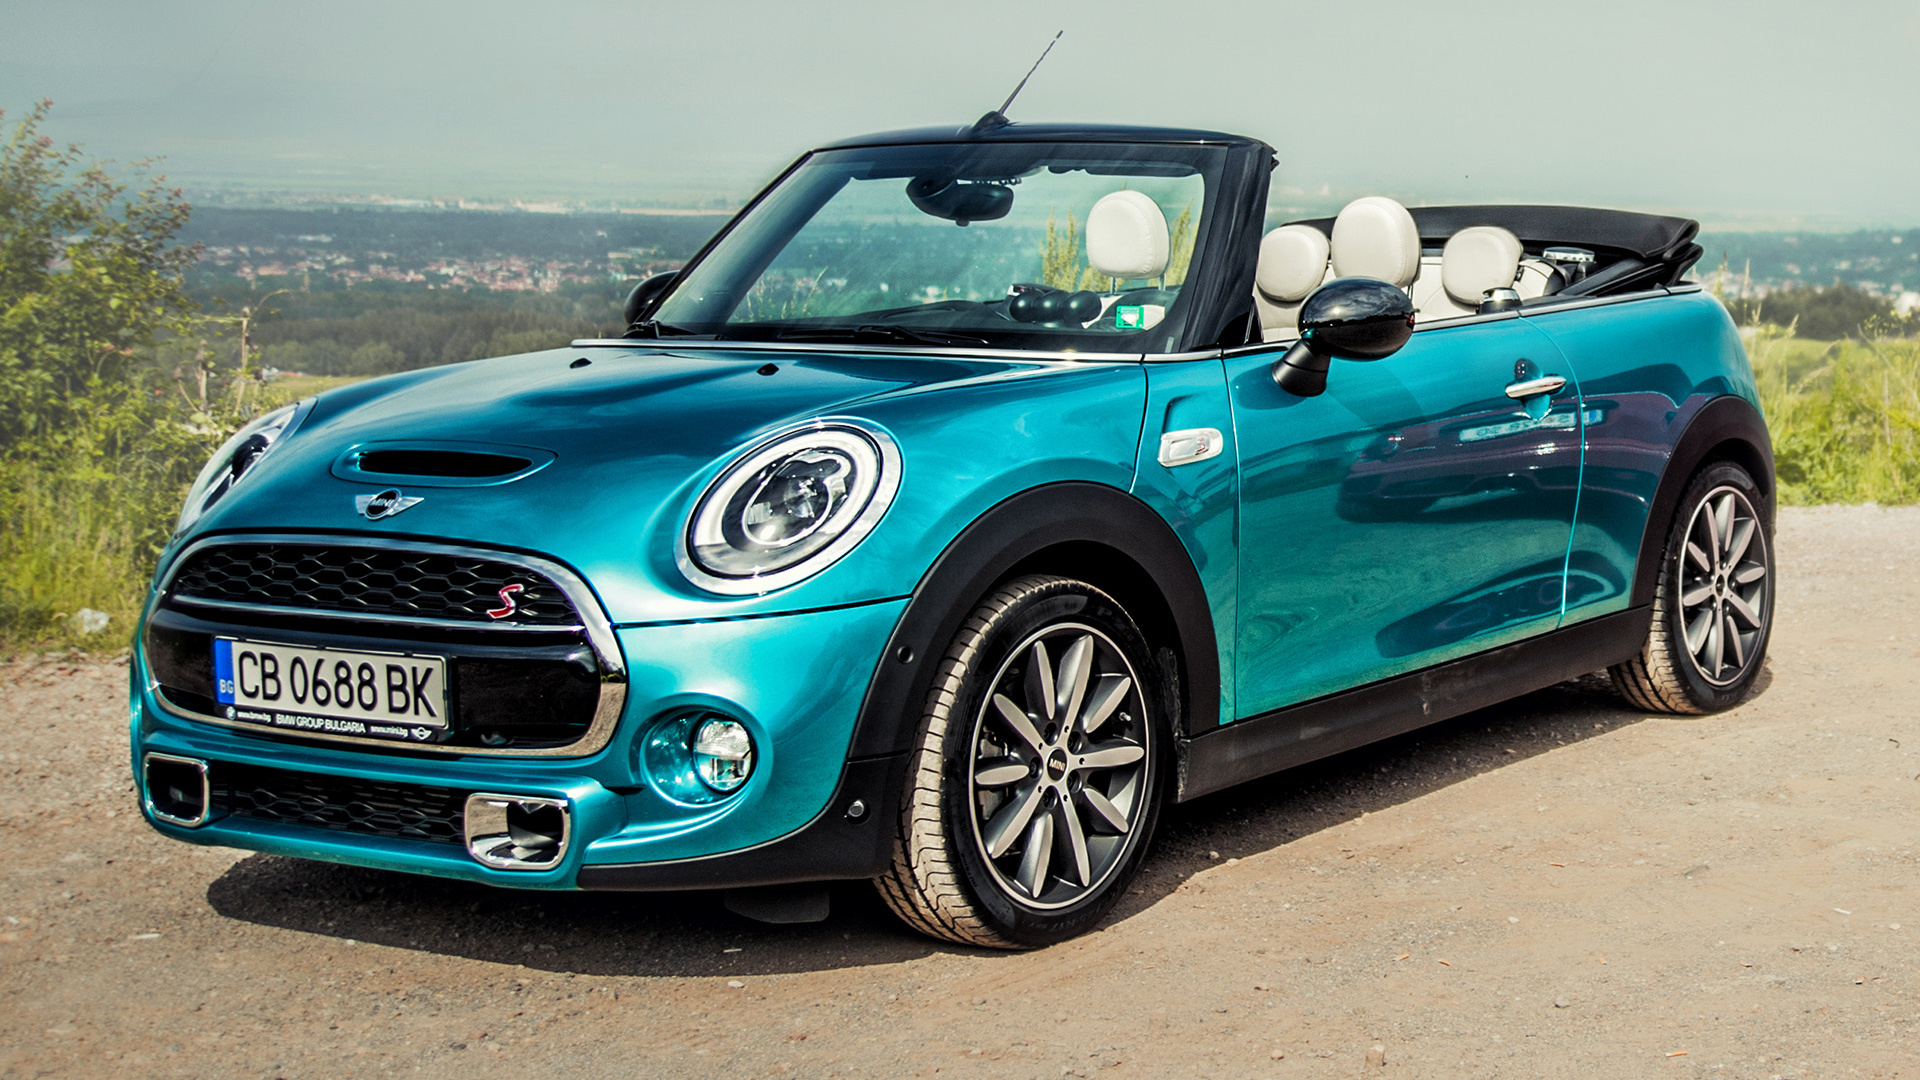 2015 mini cooper s cabrio wallpapers and hd images car. Black Bedroom Furniture Sets. Home Design Ideas